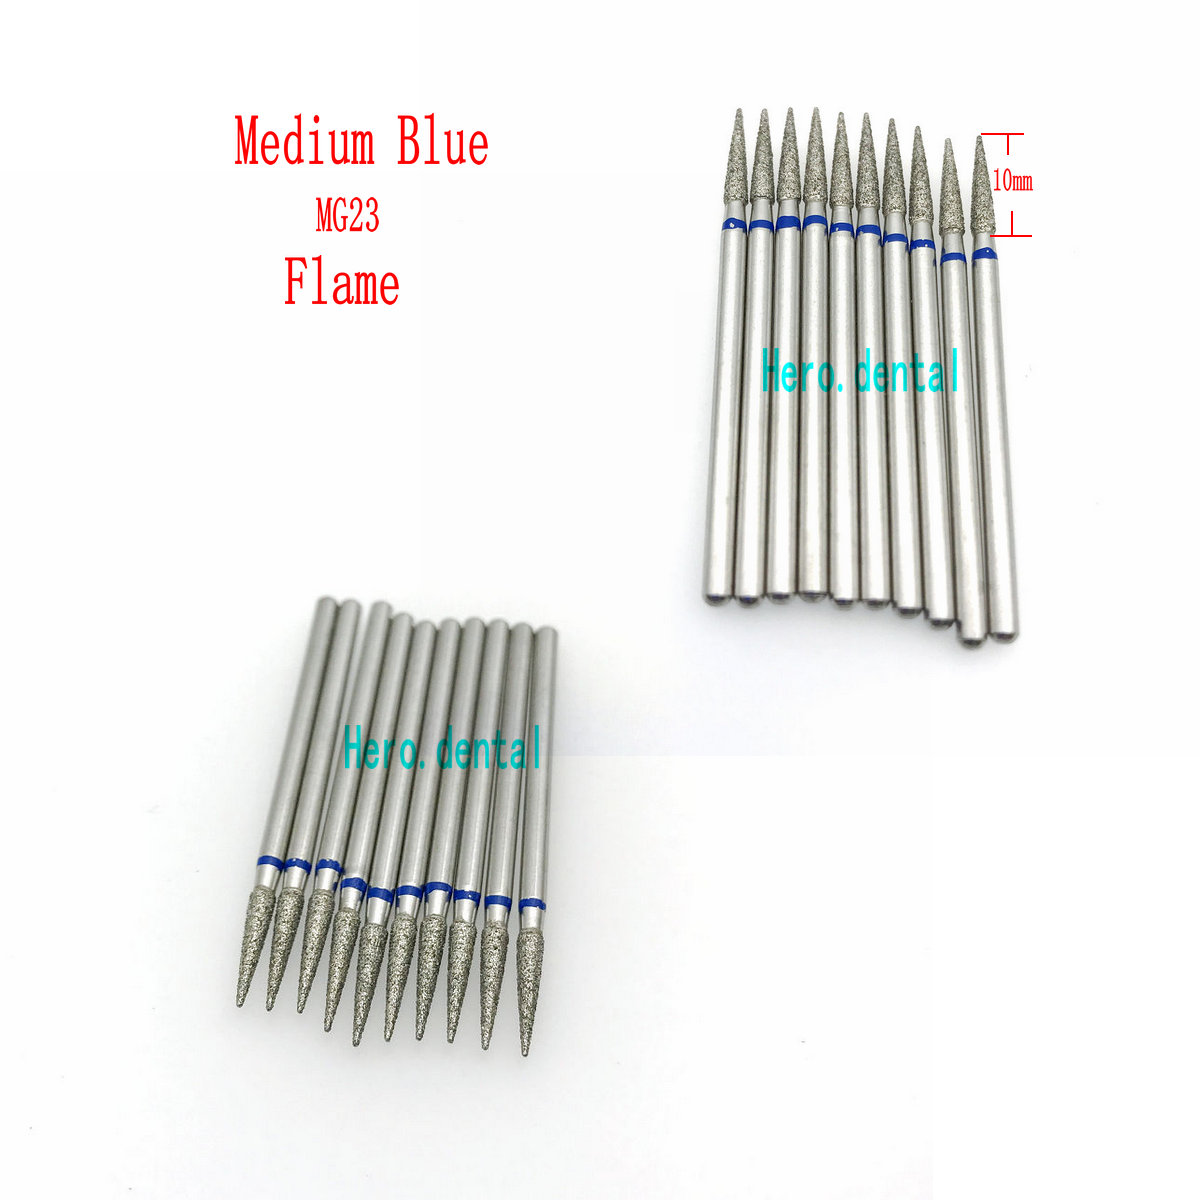 10pcs 2.35mm Dental Shank Diamond Grinding Bur Drill Bits For Dental Grinding Flame/Taper/Pearl Shape Dental Polishing Burs